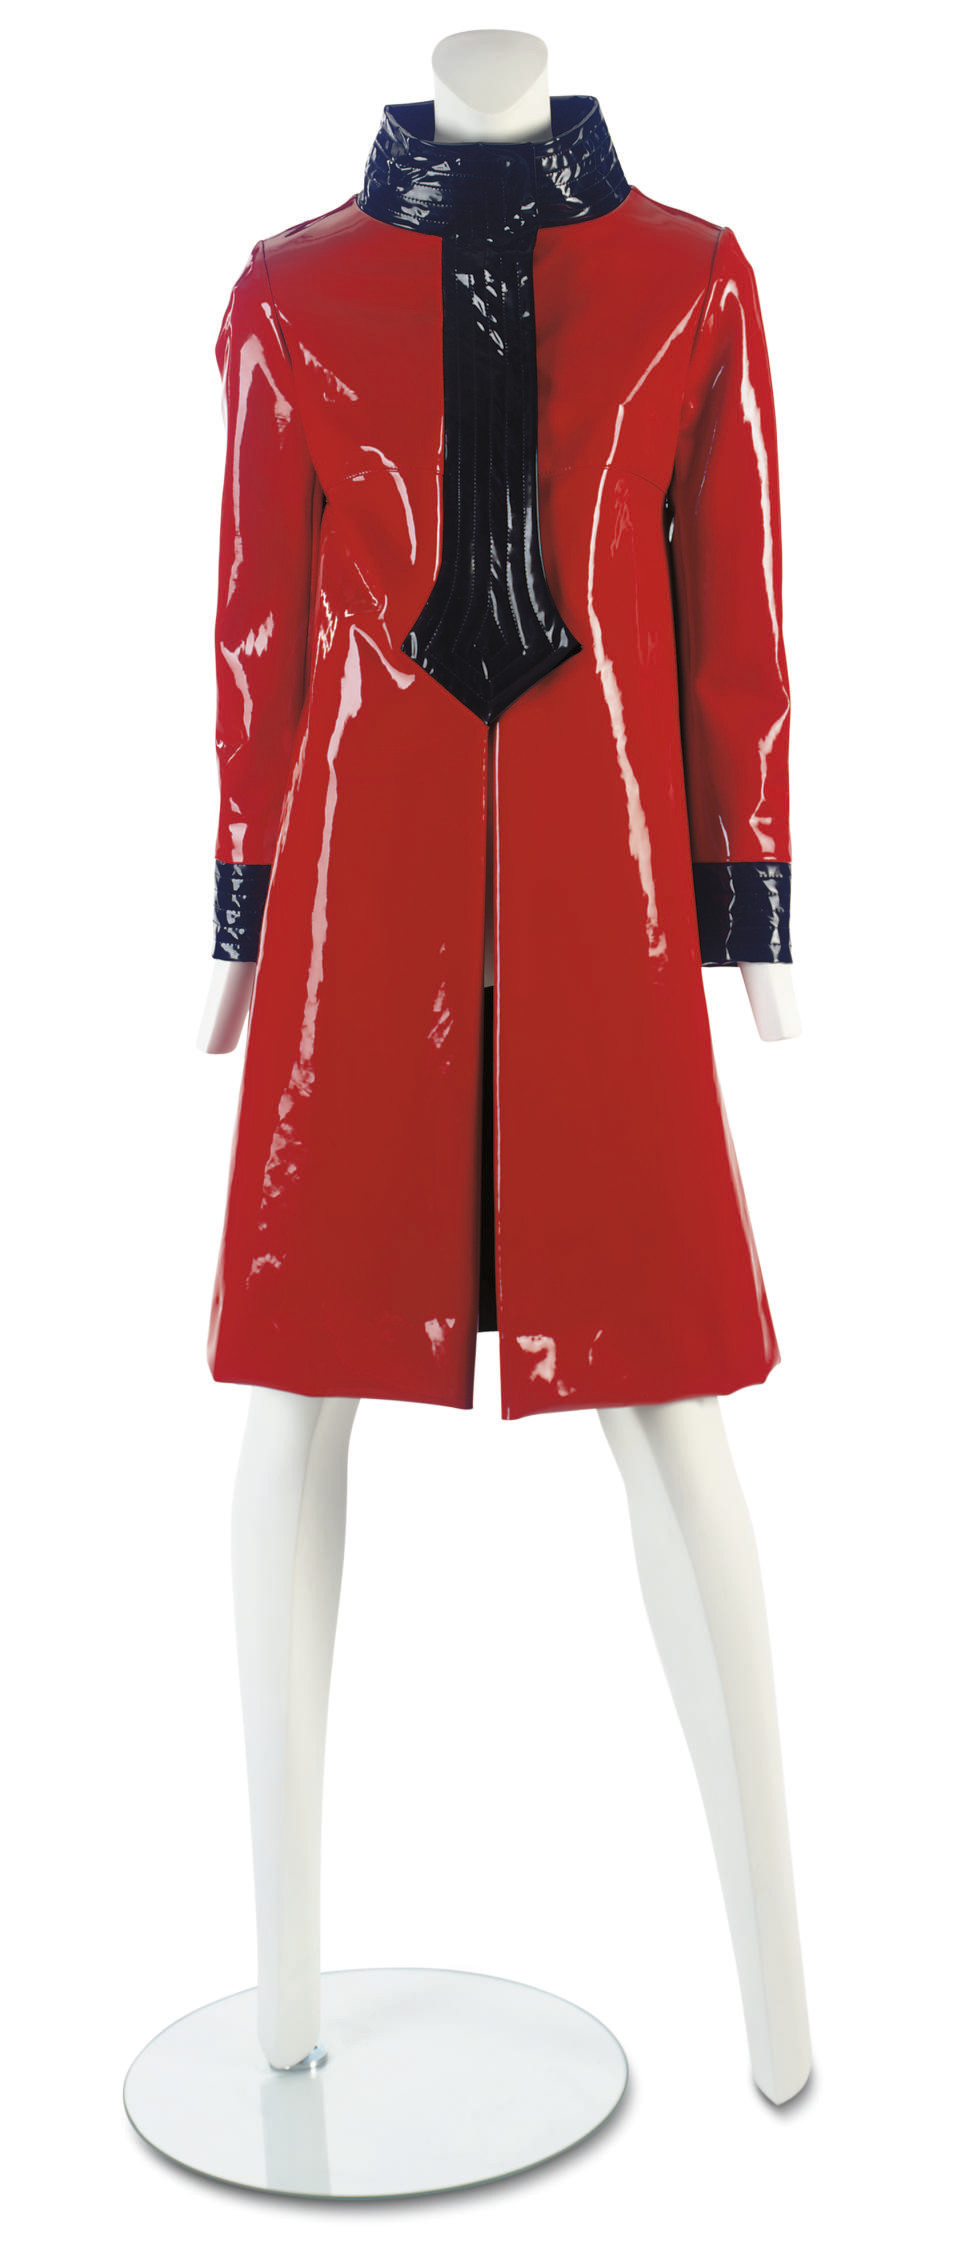 PIERRE CARDIN (B.1922) A 'COSSACK' INSPIRED RED VINYL COAT